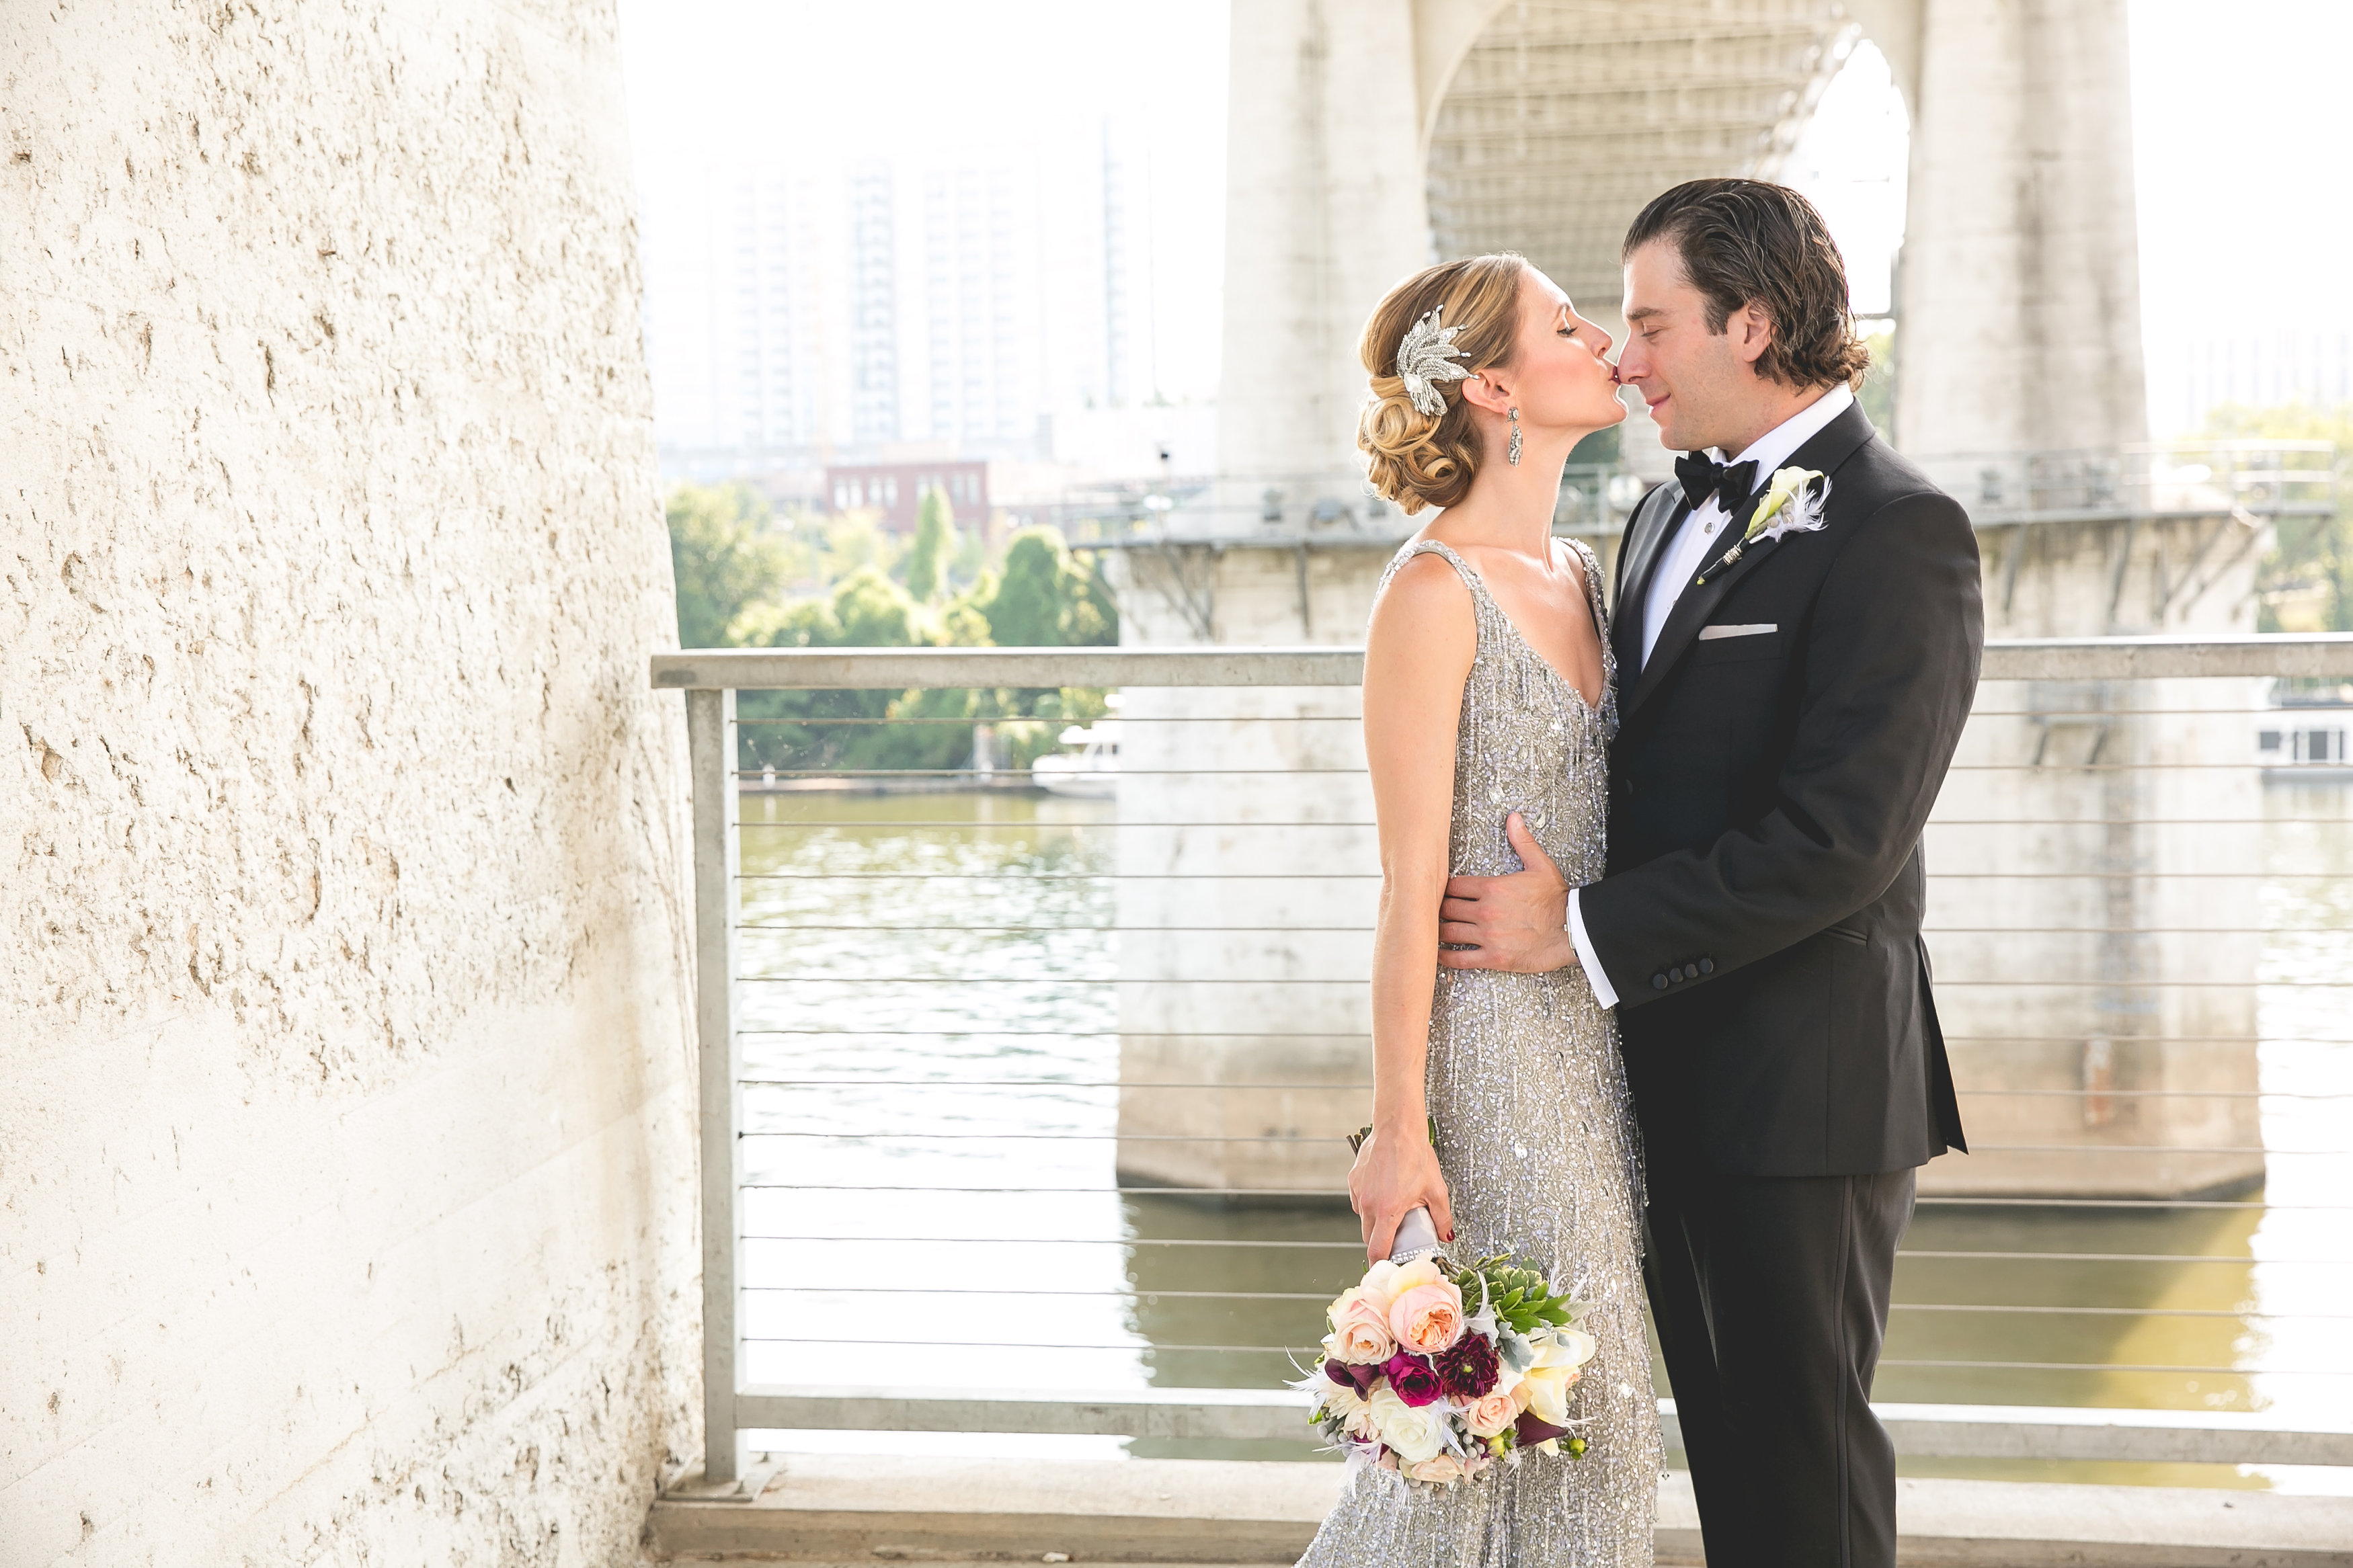 silver-sparkle-jewish-wedding-nashville-shehewe-photography-08